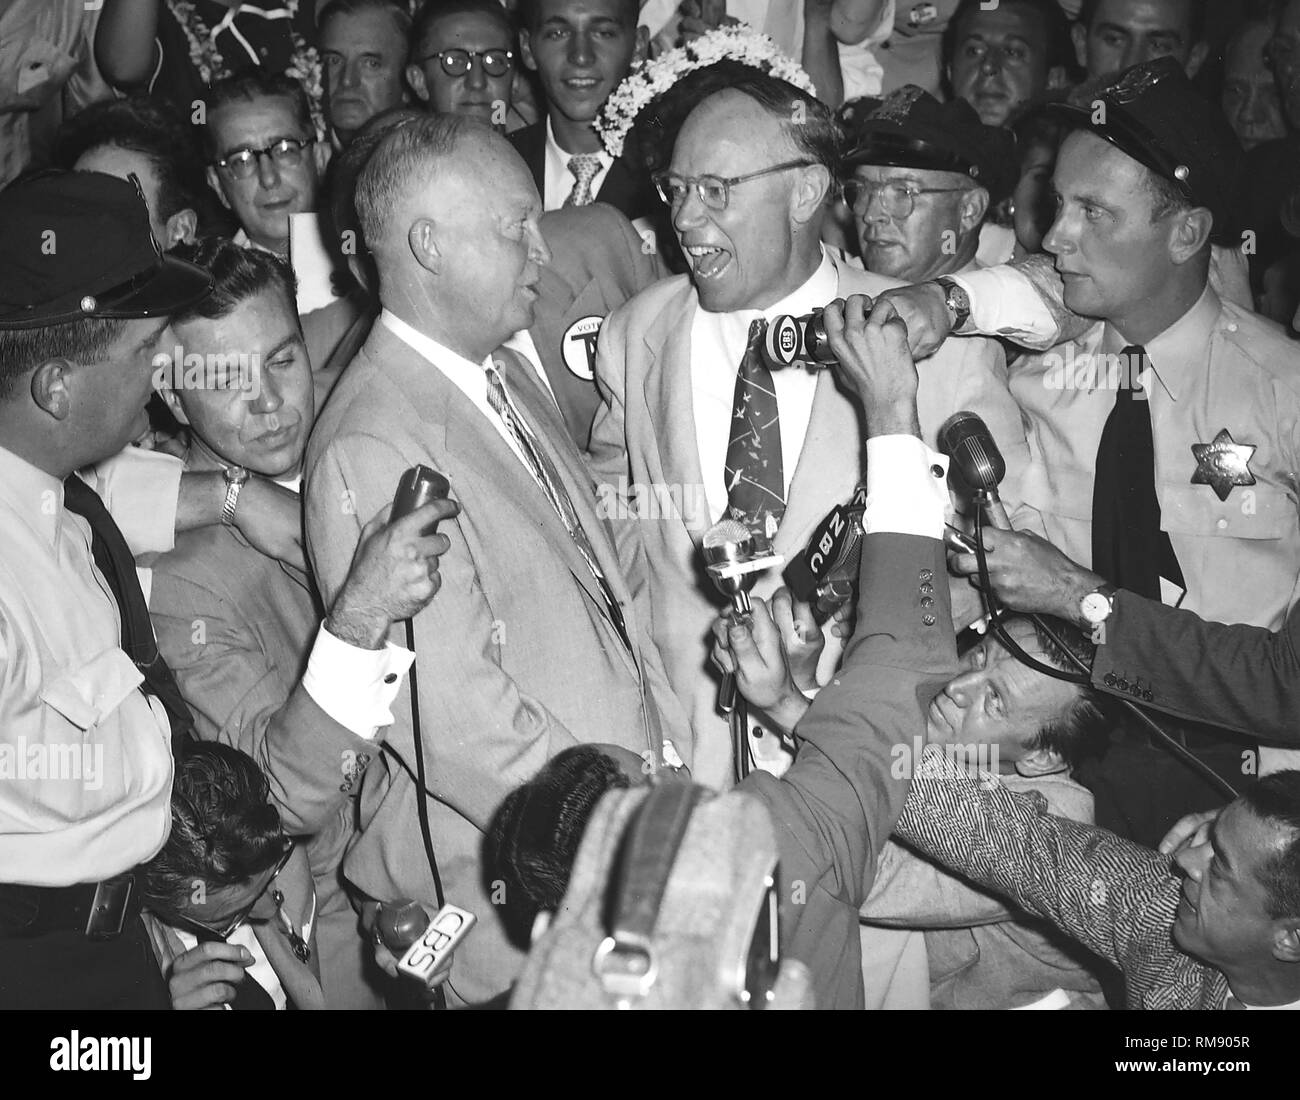 1952 Republican presidential candidate General Dwight Eisenhower talks with Ohio Senator Robert Taft after outpolling him at the Republican convention in Chicago. - Stock Image